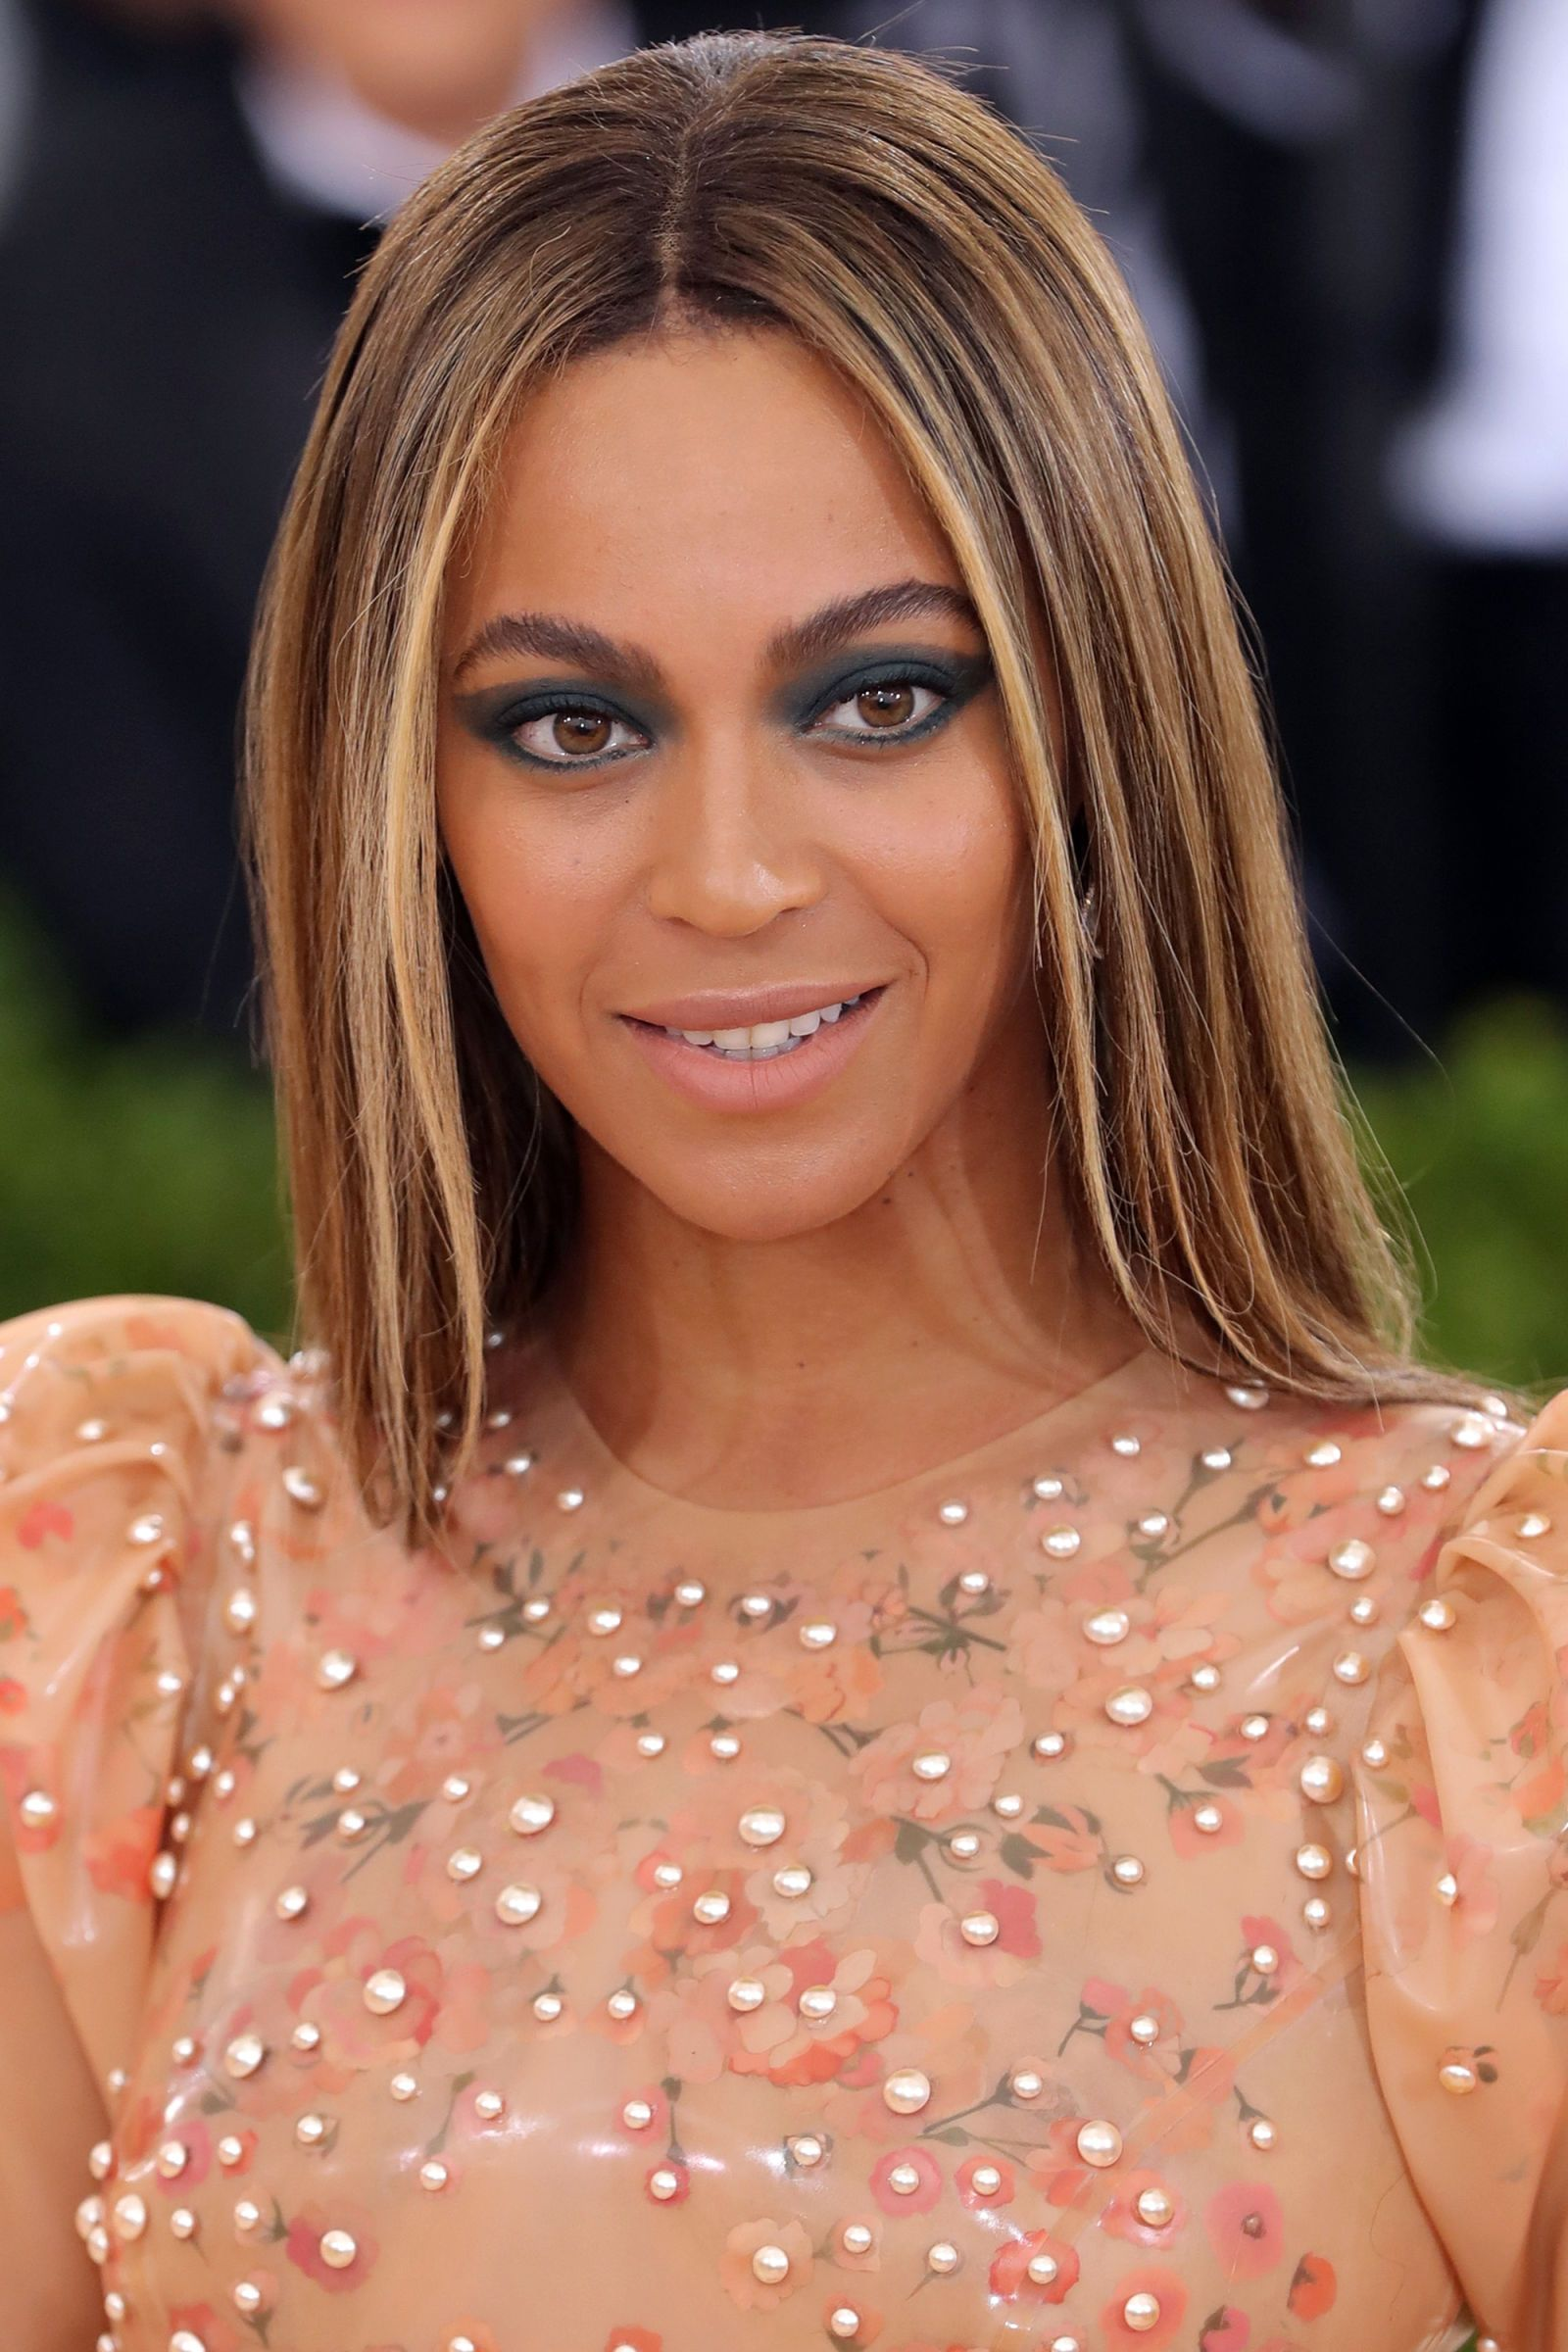 The Best Ash Blonde Hair In Hollywood Beyonce Hair Color